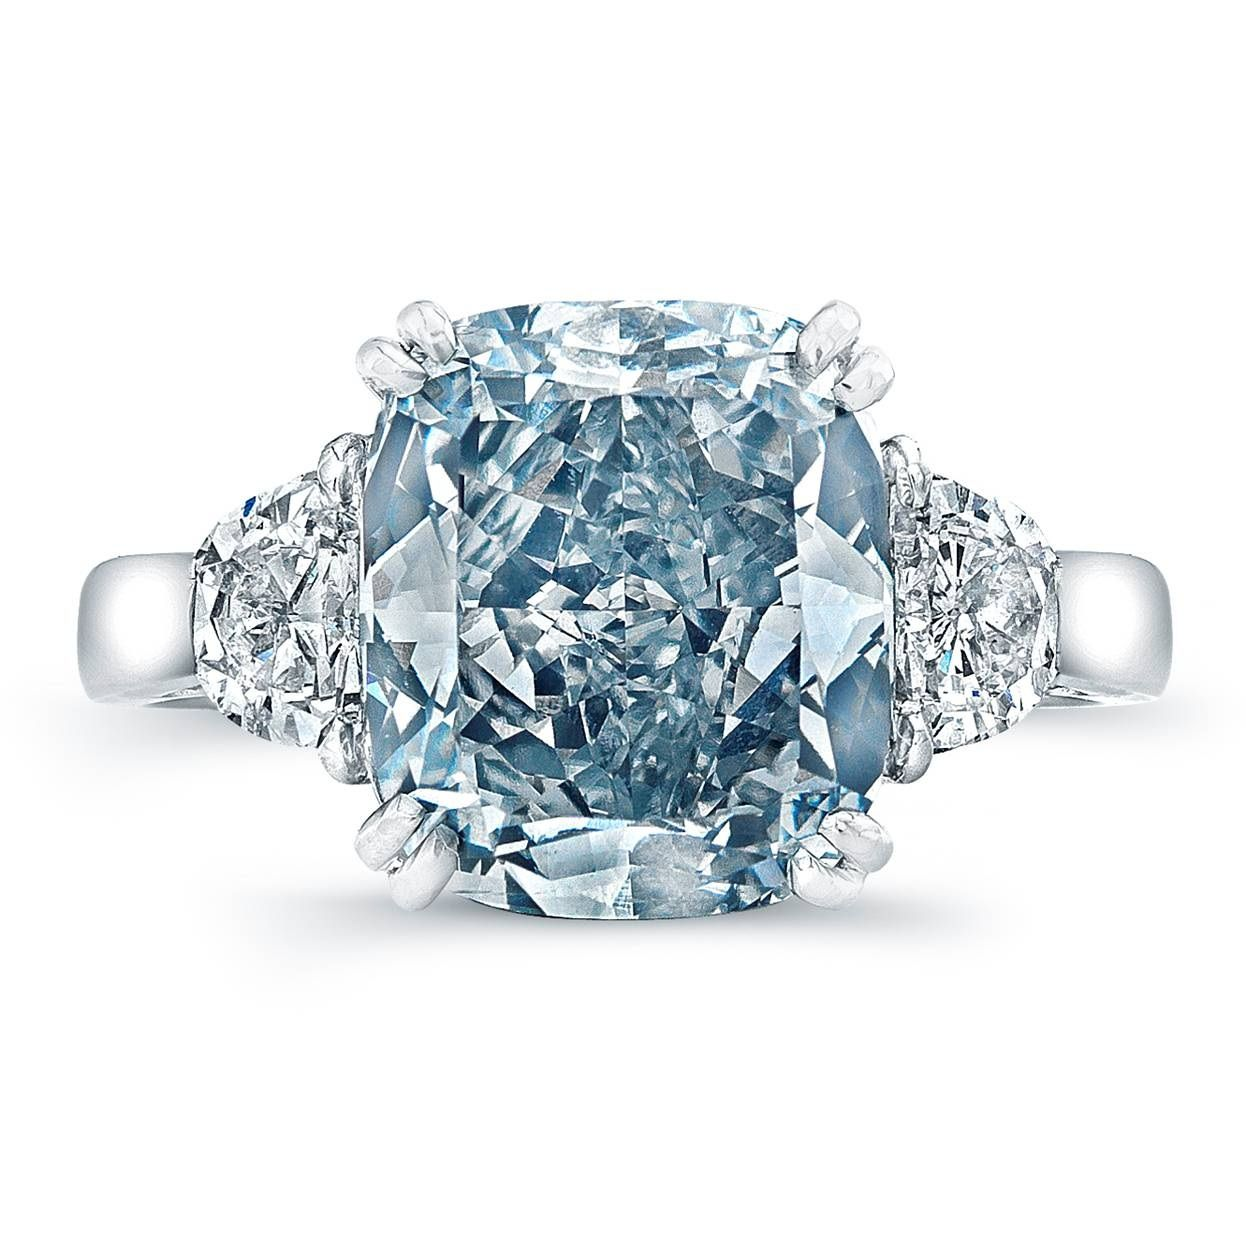 5 Engagement Rings For The Unconventional Bride Eiseman Jewels Blue Engagement Ring Blue Diamond Ring Blue Diamond